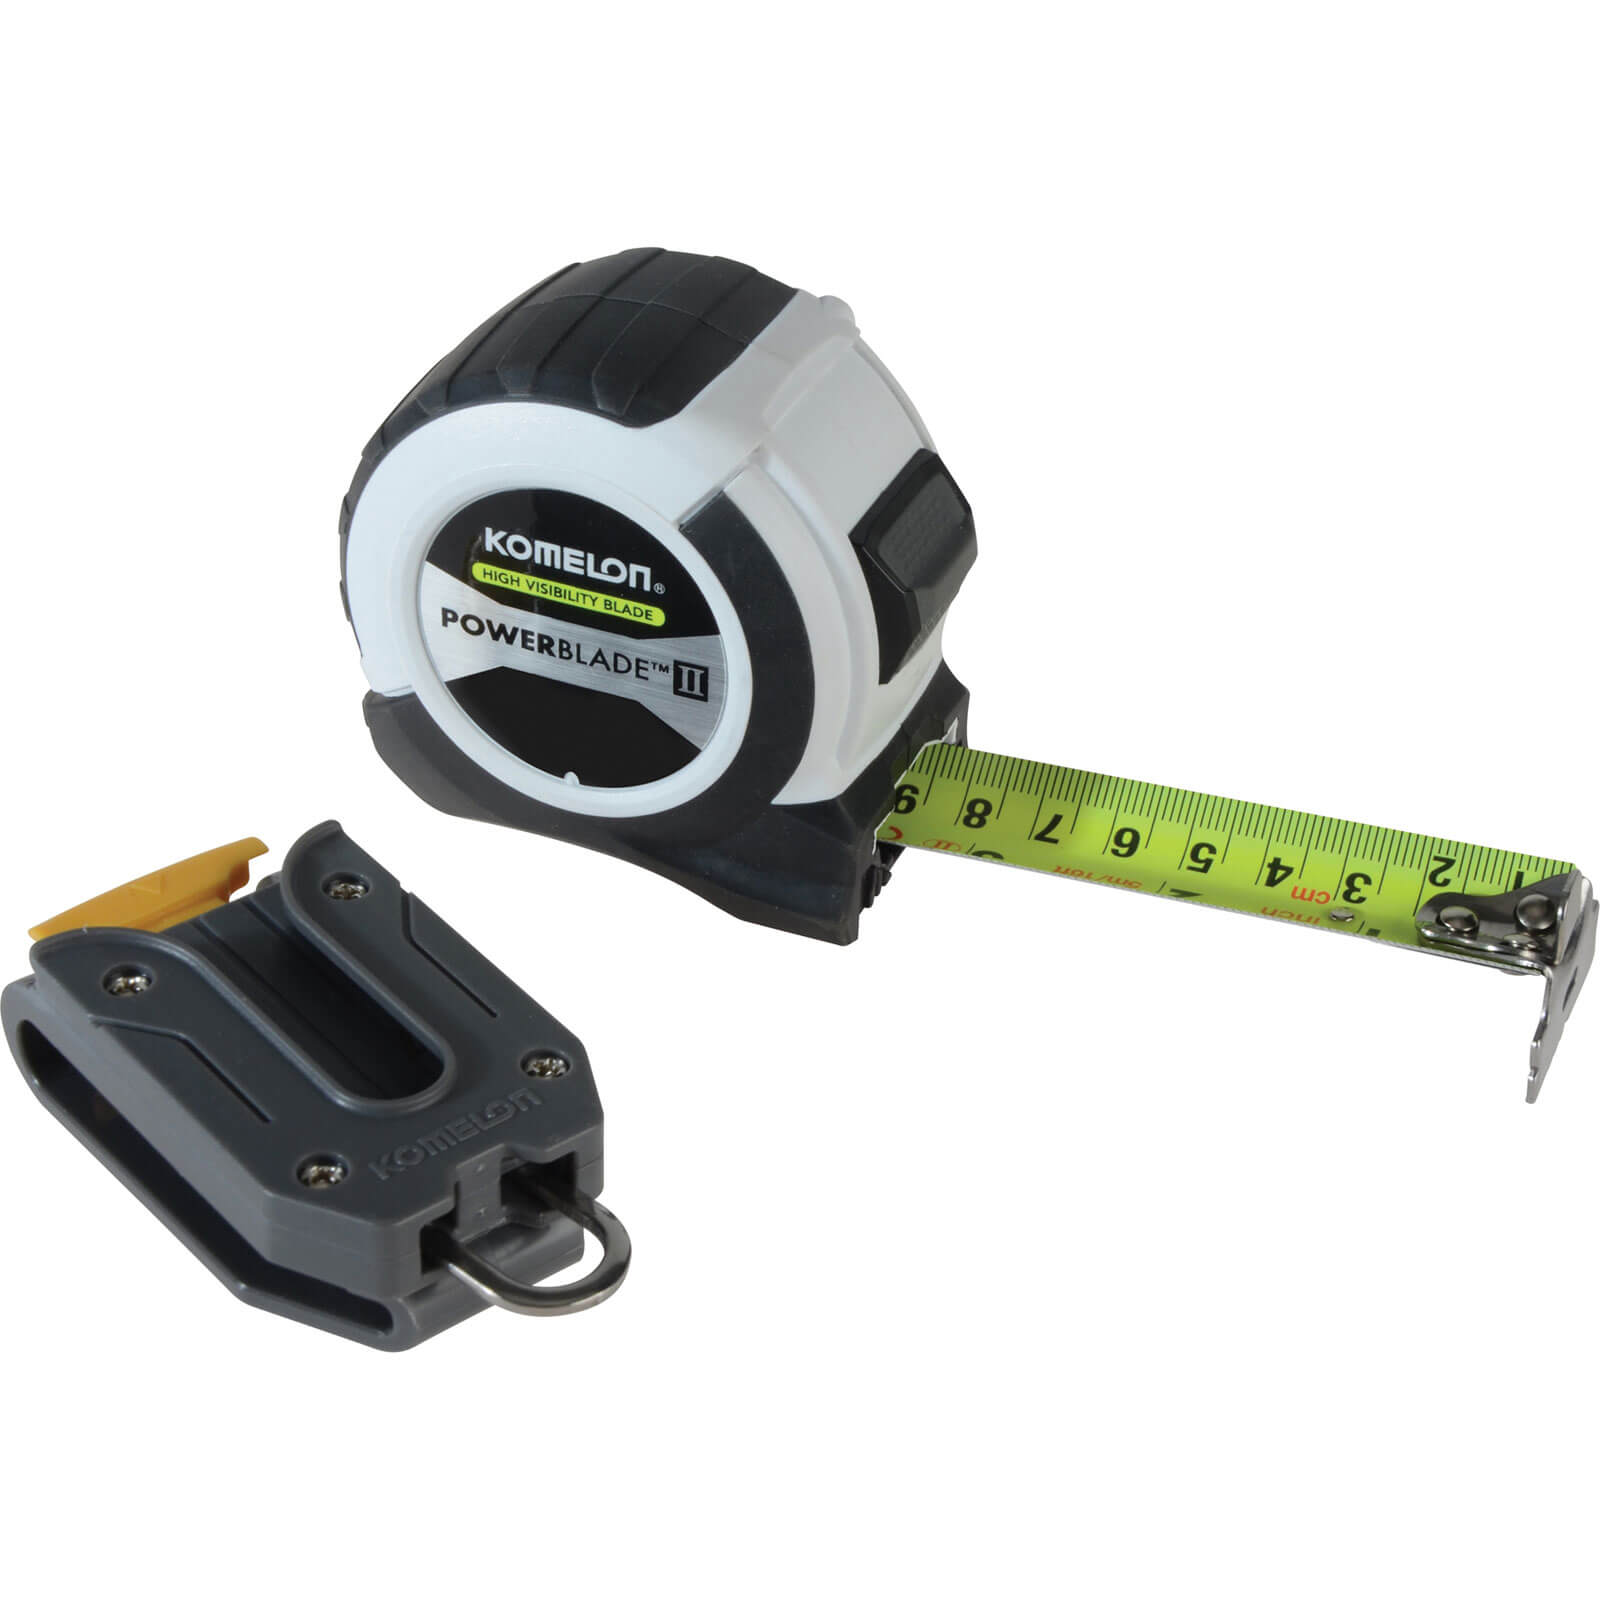 Image of Komelon Powerblade II Tape Measure Imperial & Metric 26ft / 8m 27mm